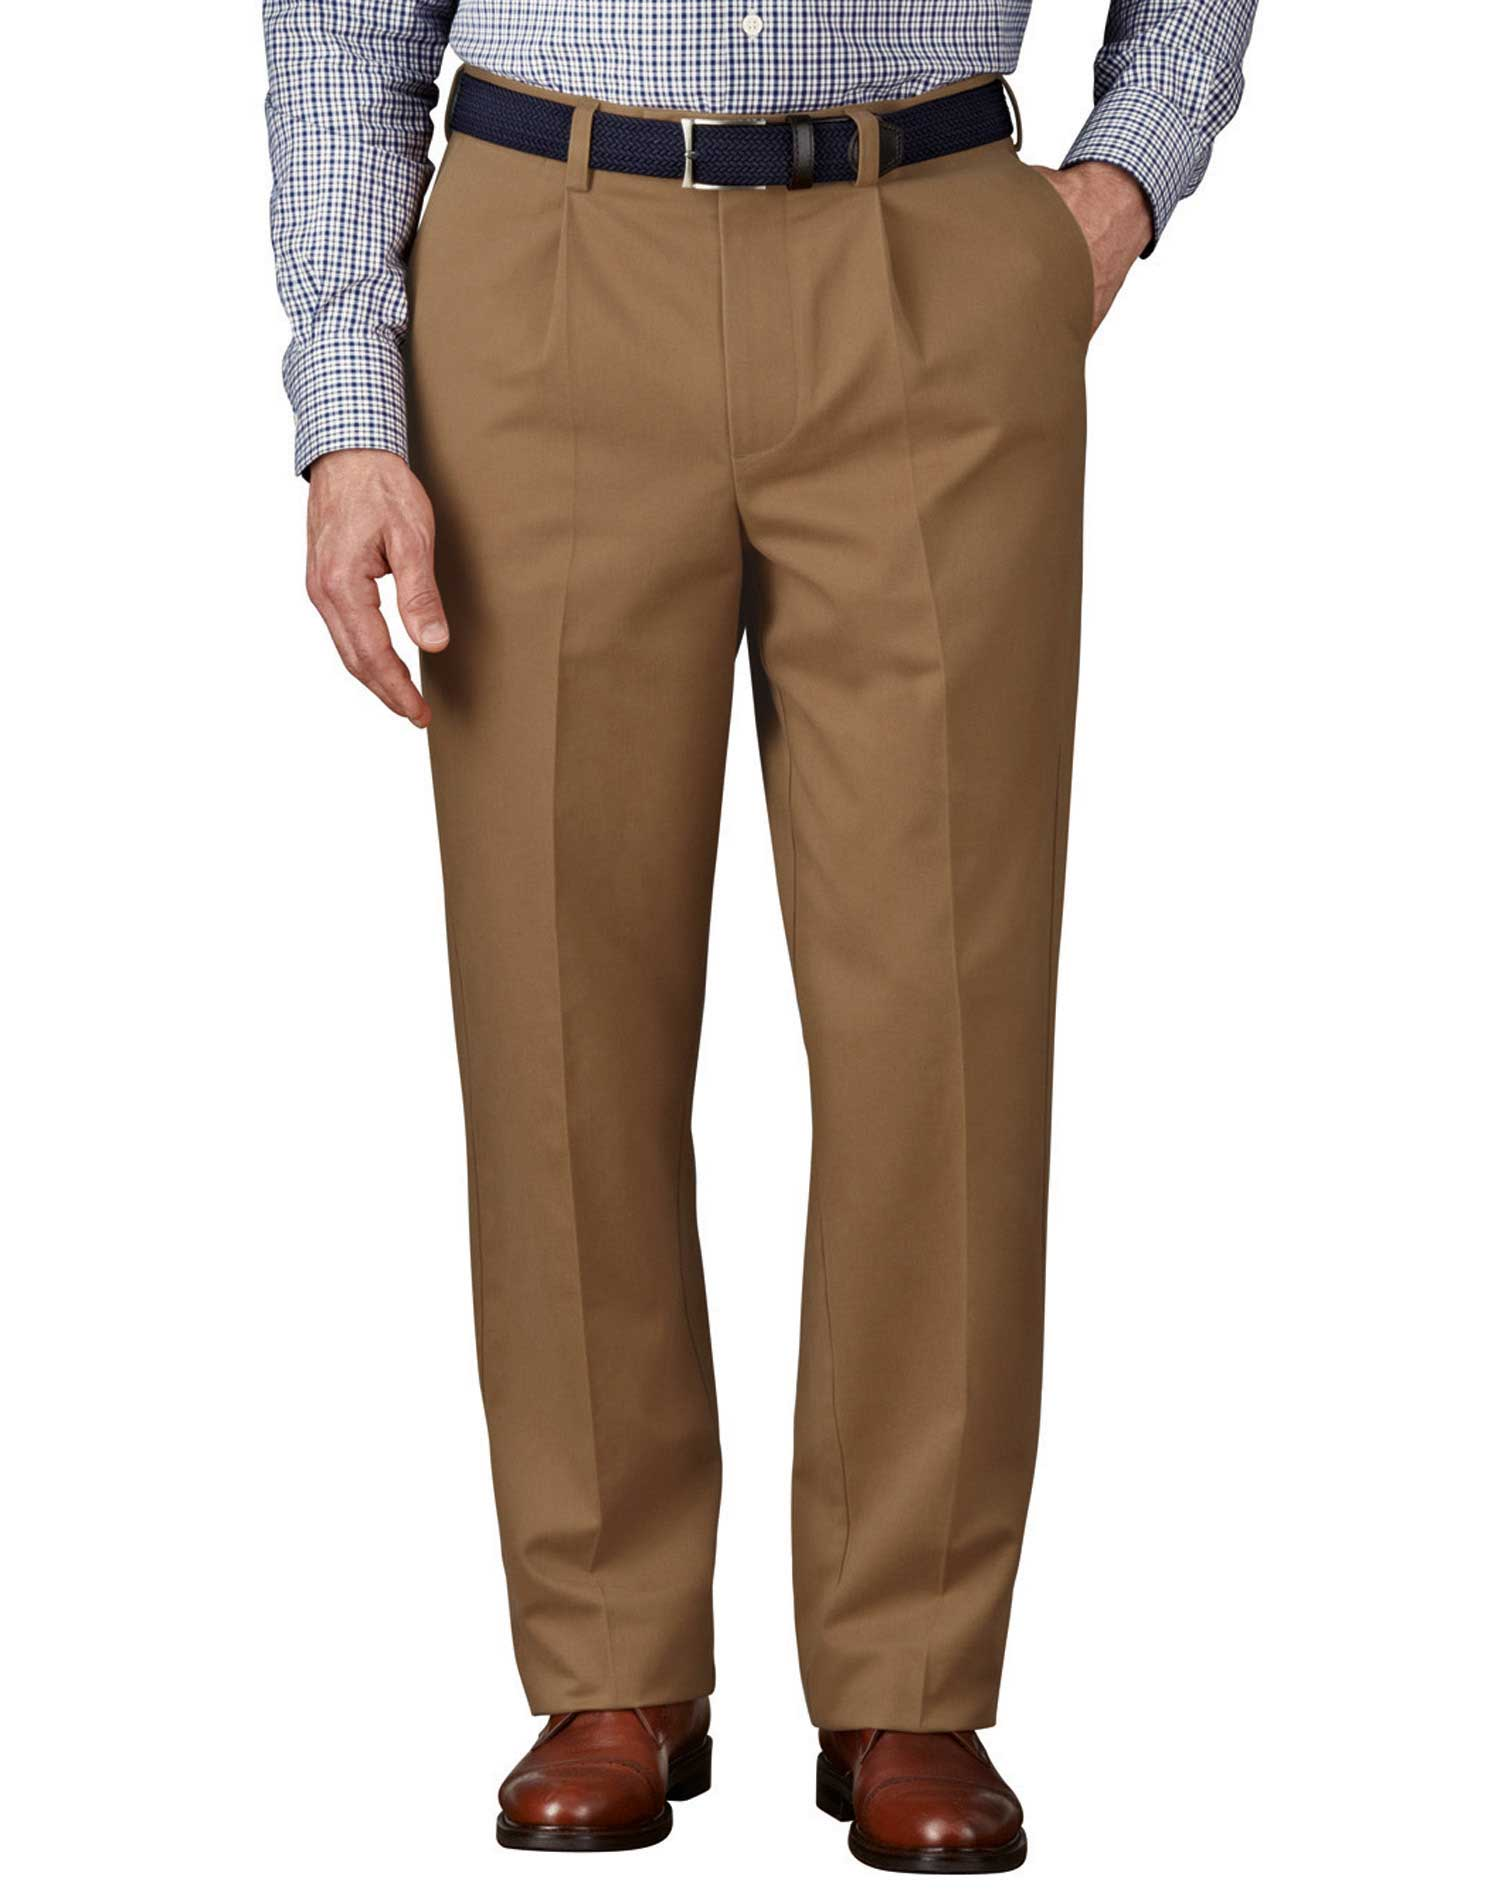 Camel Classic Fit Single Pleat Non-Iron Cotton Chino Trousers Size W38 L29 by Charles Tyrwhitt